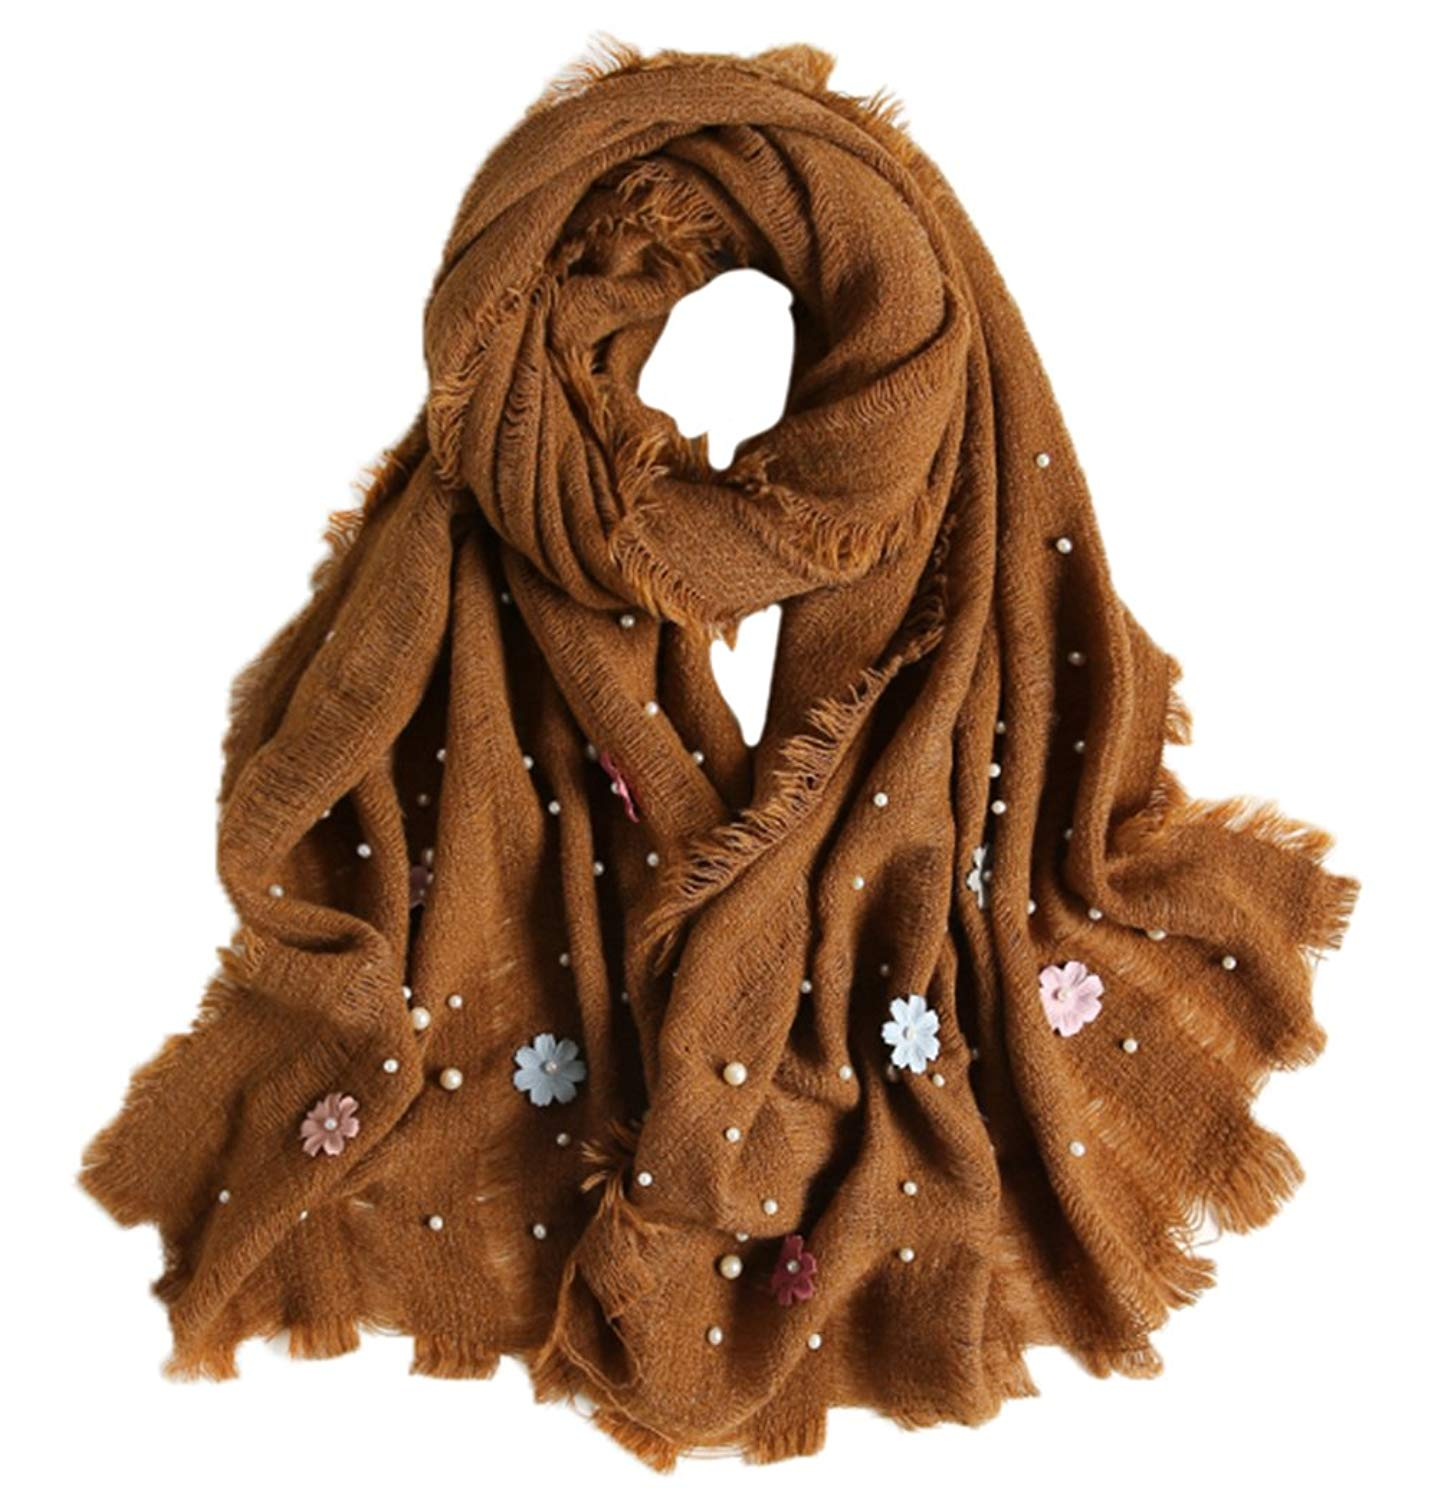 Candy Colors Women Fashion Scarf Decorated with Small Flowers and Pearls Long Large Lady Tassels Shawl